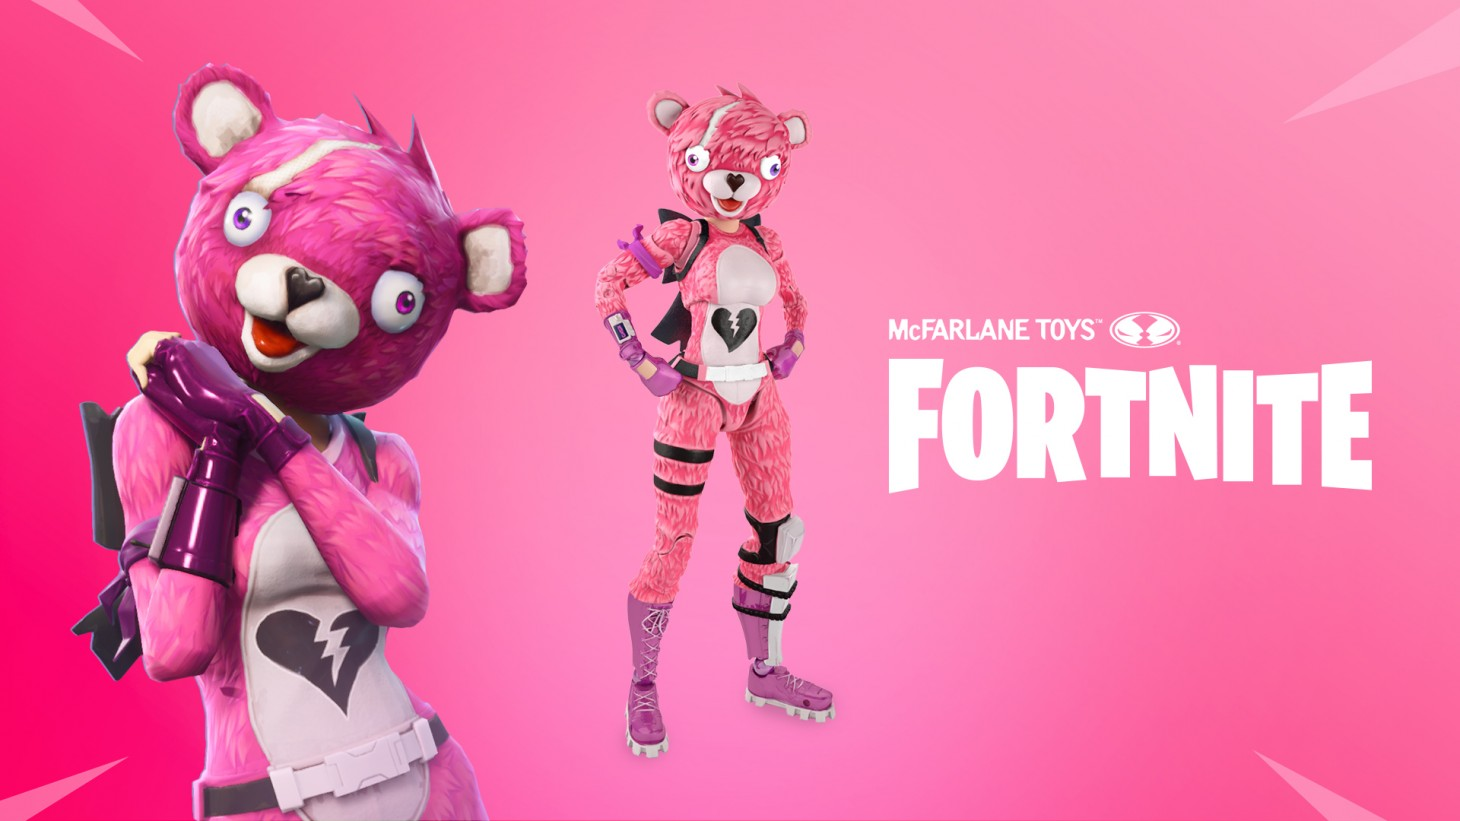 Mcfarlane Releasing Fortnite Figurines And More Perezstart